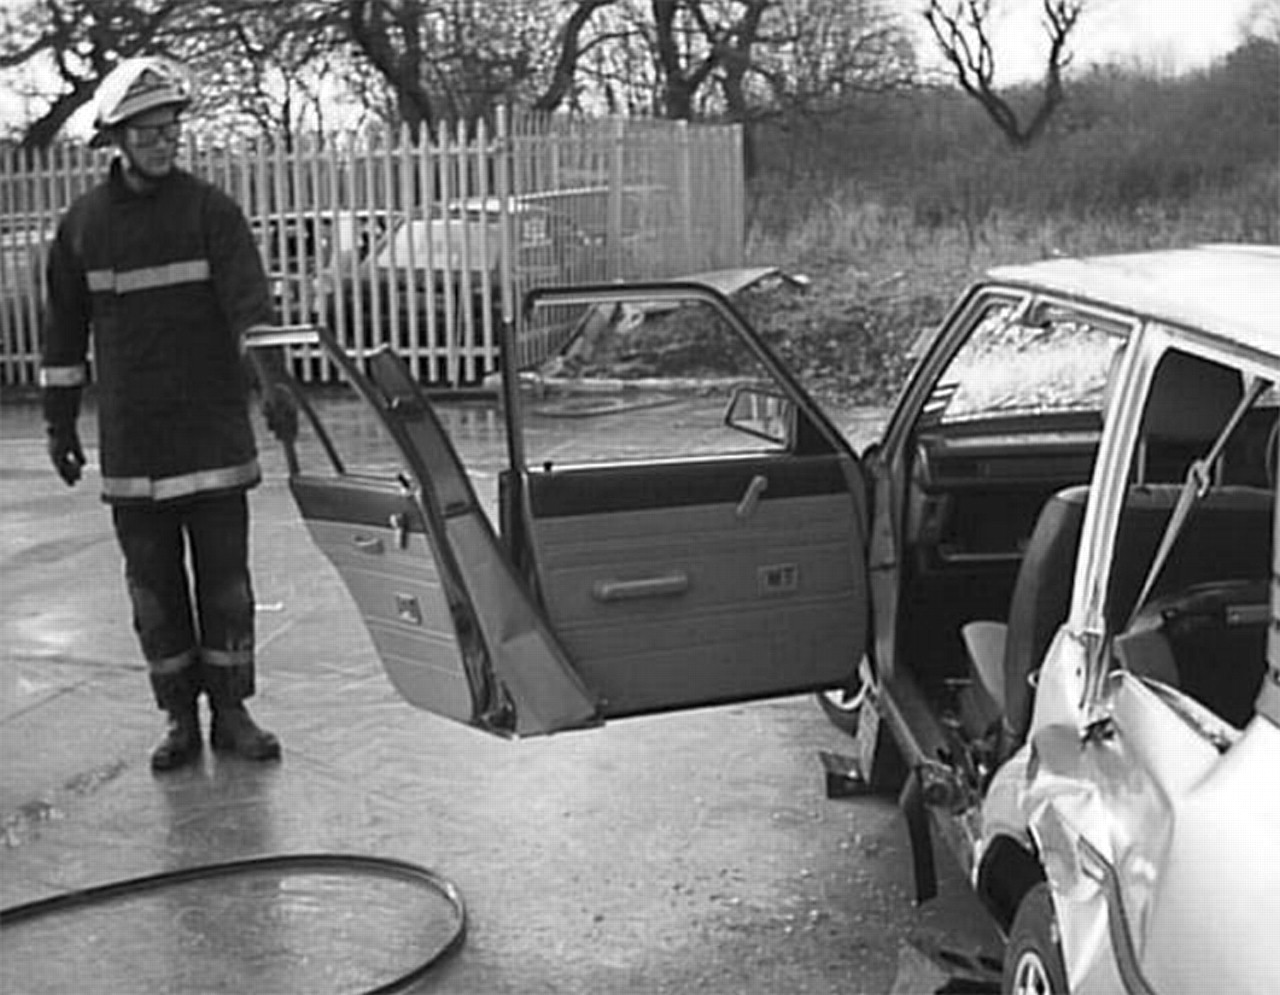 Extrication of the seriously injured road crash victim